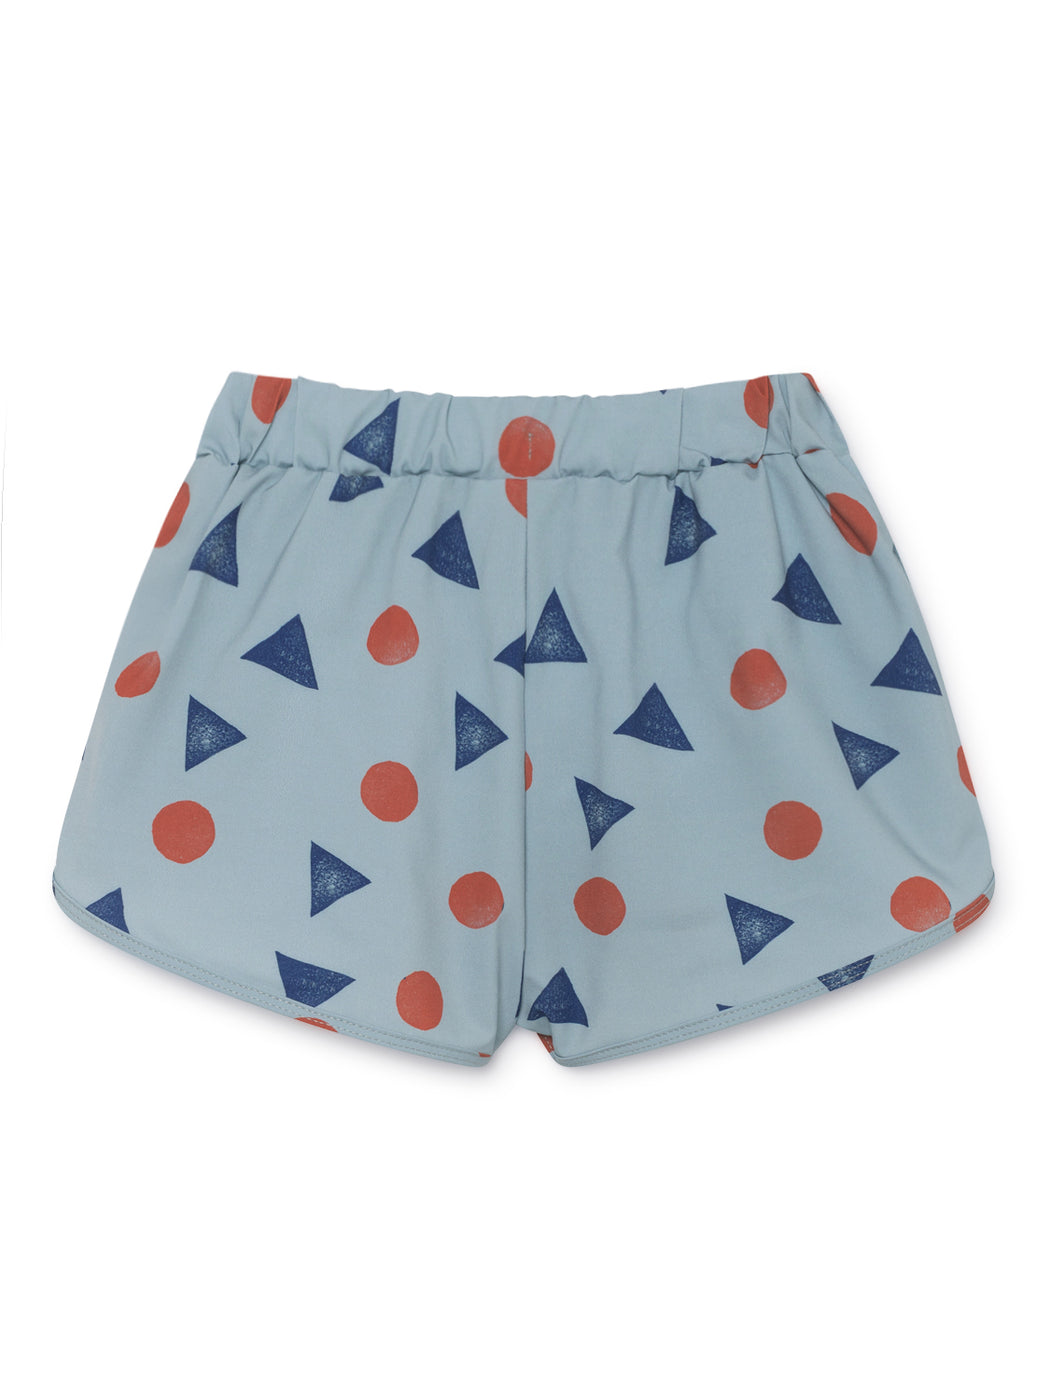 Bobo Choses - Pollen Swim Trunk